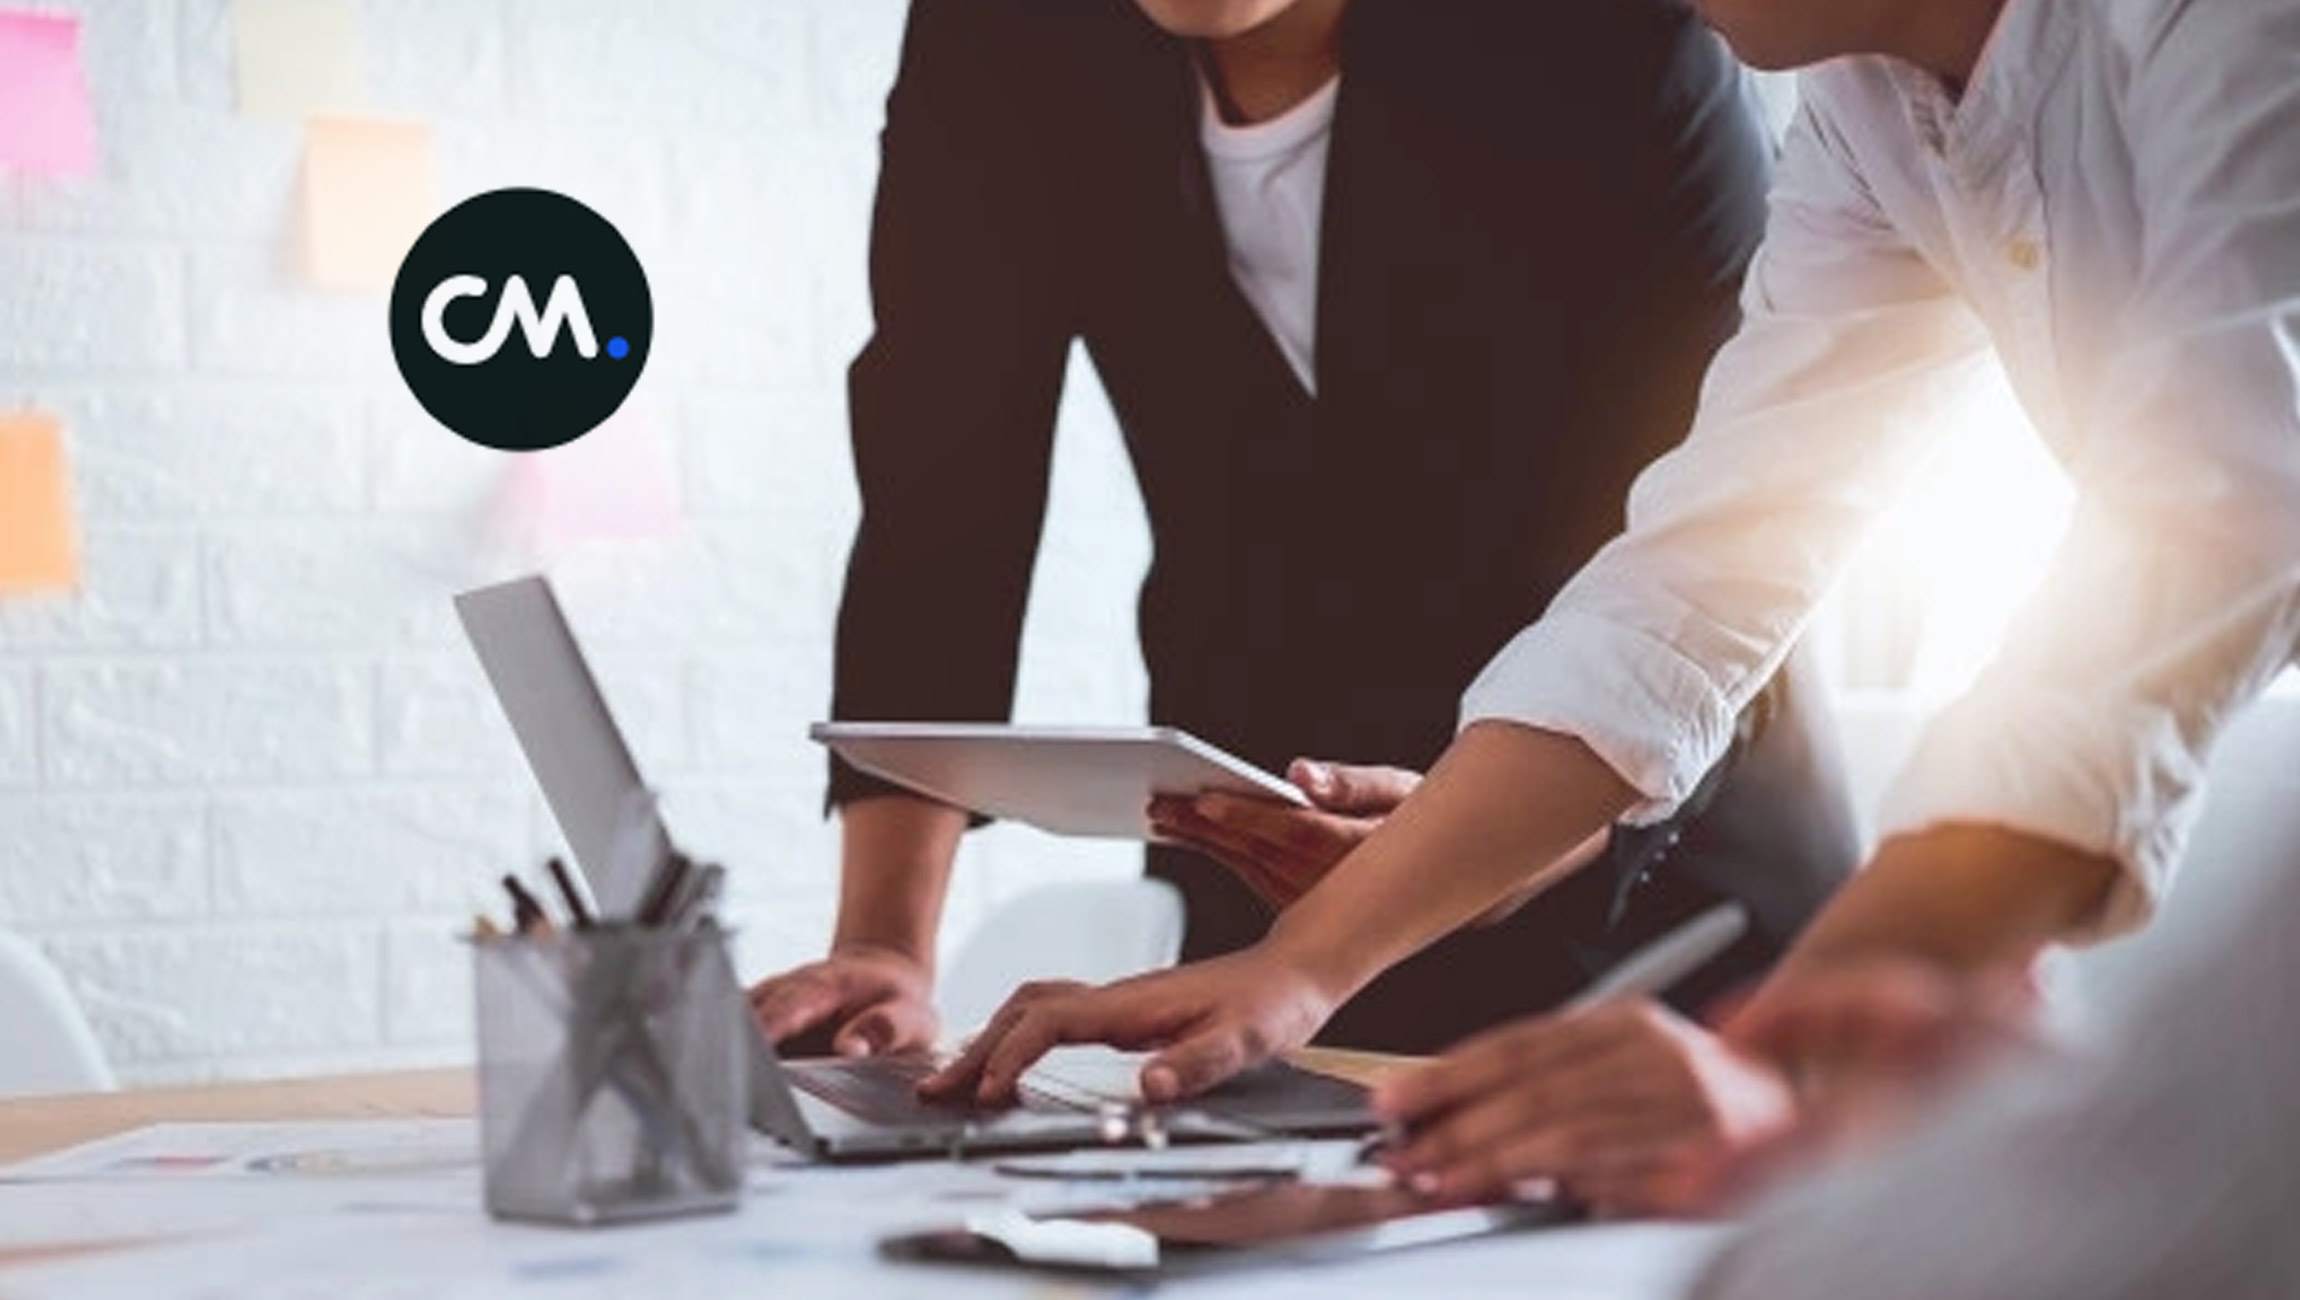 Infusing Customer Insights Into Your Business: A Look At Customer Relationship Management Systems (CRMs), Customer Data Platforms (CDPs), And Data Management Platforms (DMPs)